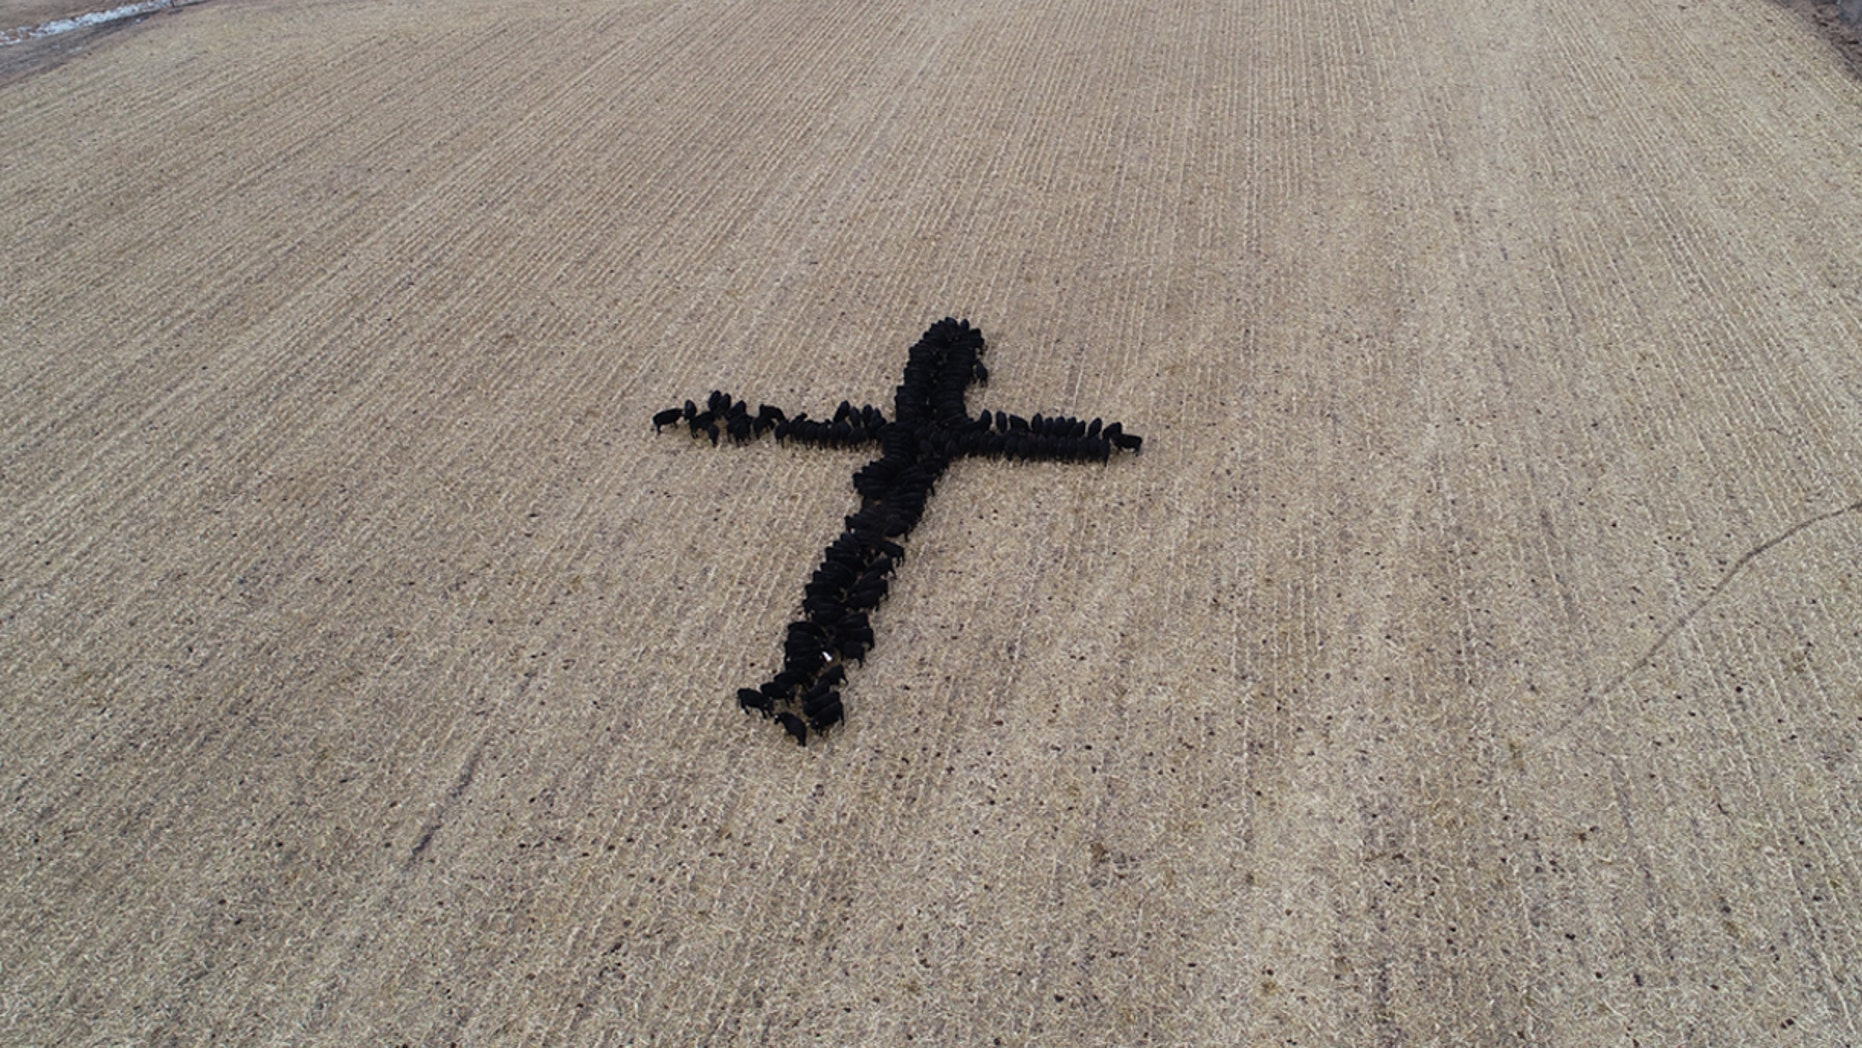 Farmer Gene Hanson took a picture of his neighbor's cows forming the shape of a cross.